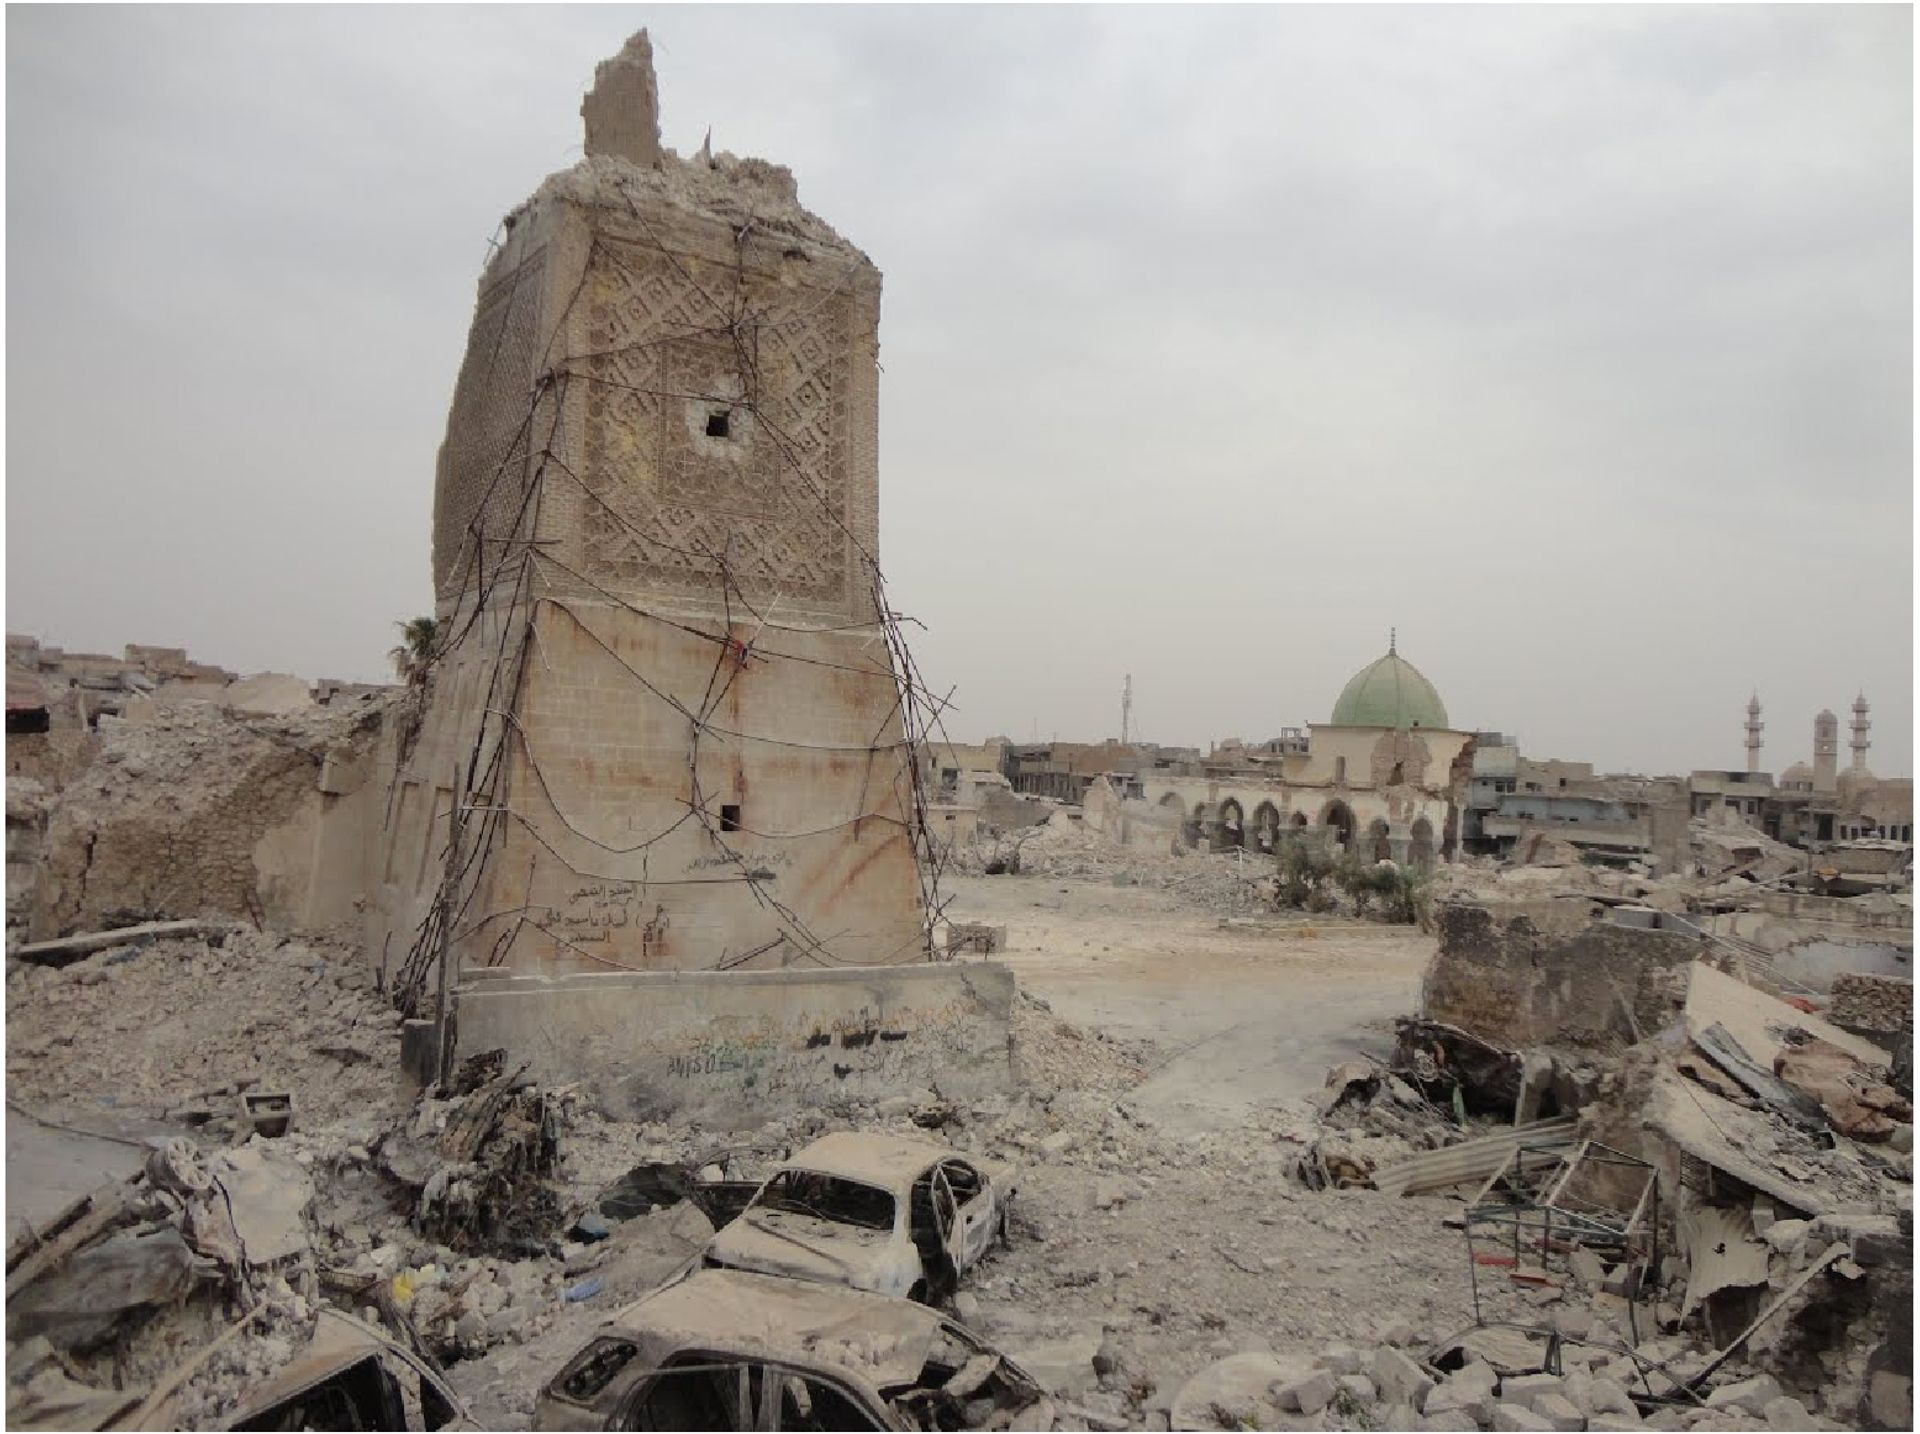 Scorched vehicles at the foot of the destroyed Al-Hadba' Minaret in Mosul, Iraq Courtesy of the World Monuments Fund